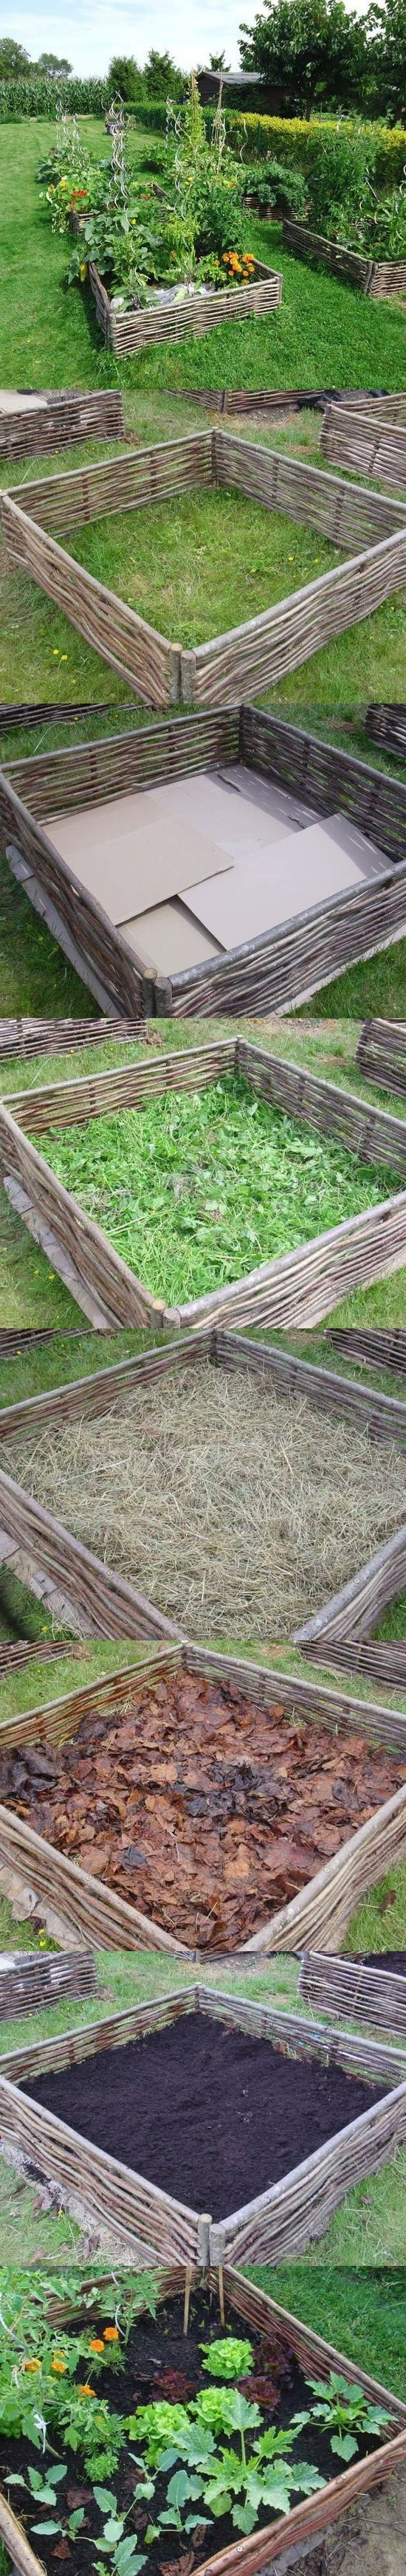 how to make a raised garden bed for tomatoes